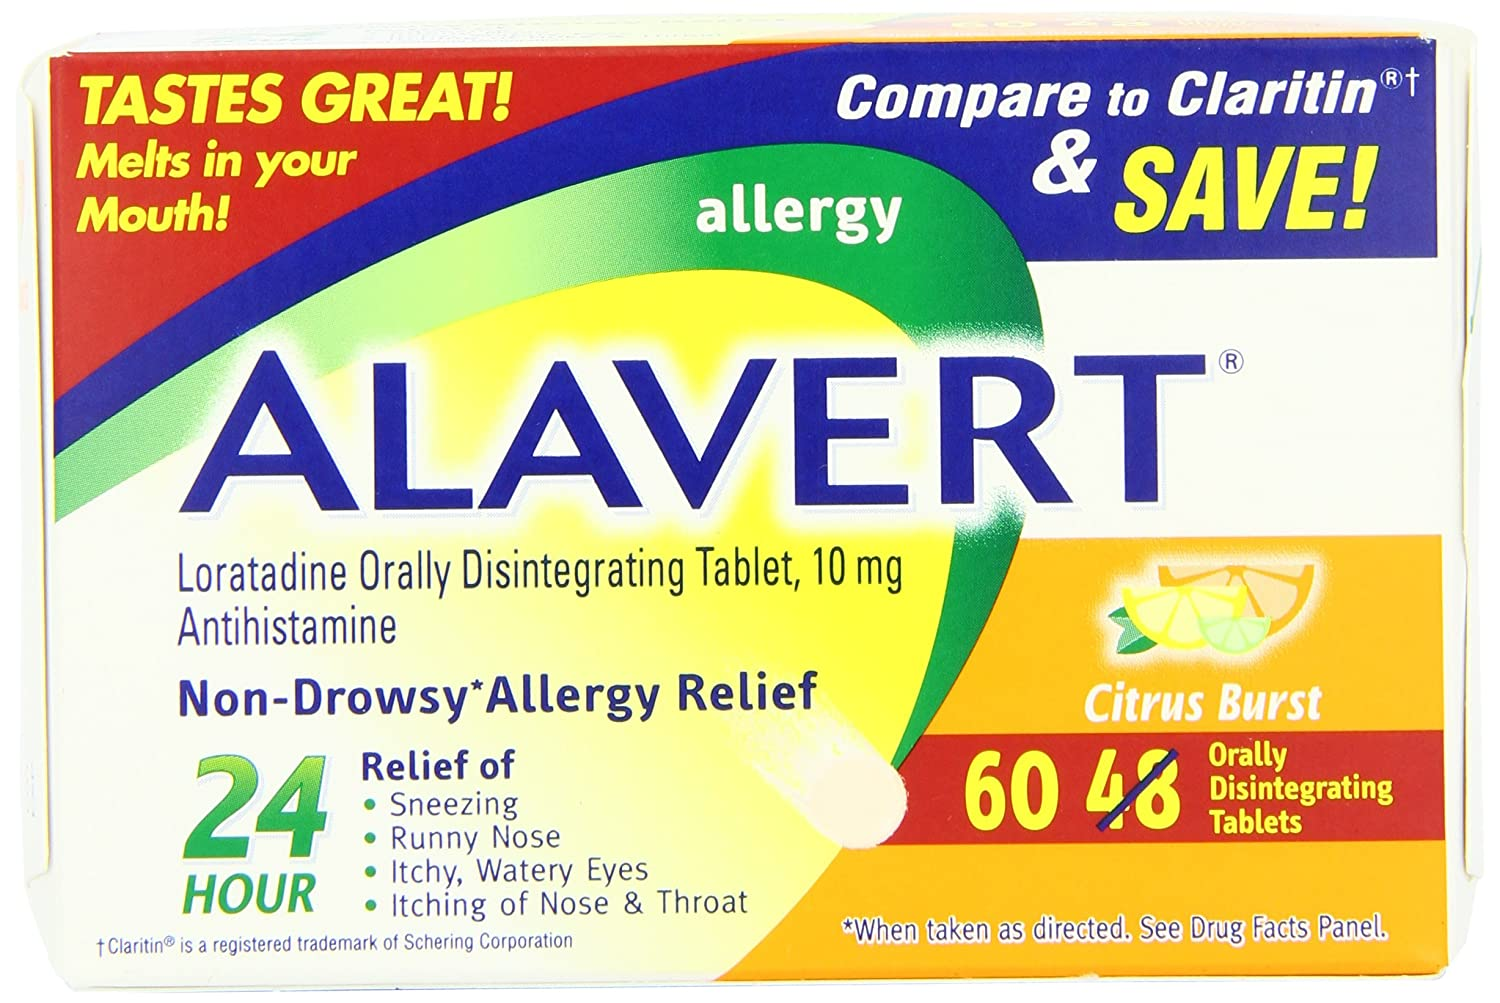 Alavert Allergy 24-Hour Relief (Citrust Burst Flavor Orally Disintegrating  Tablets), Non-Drowsy,